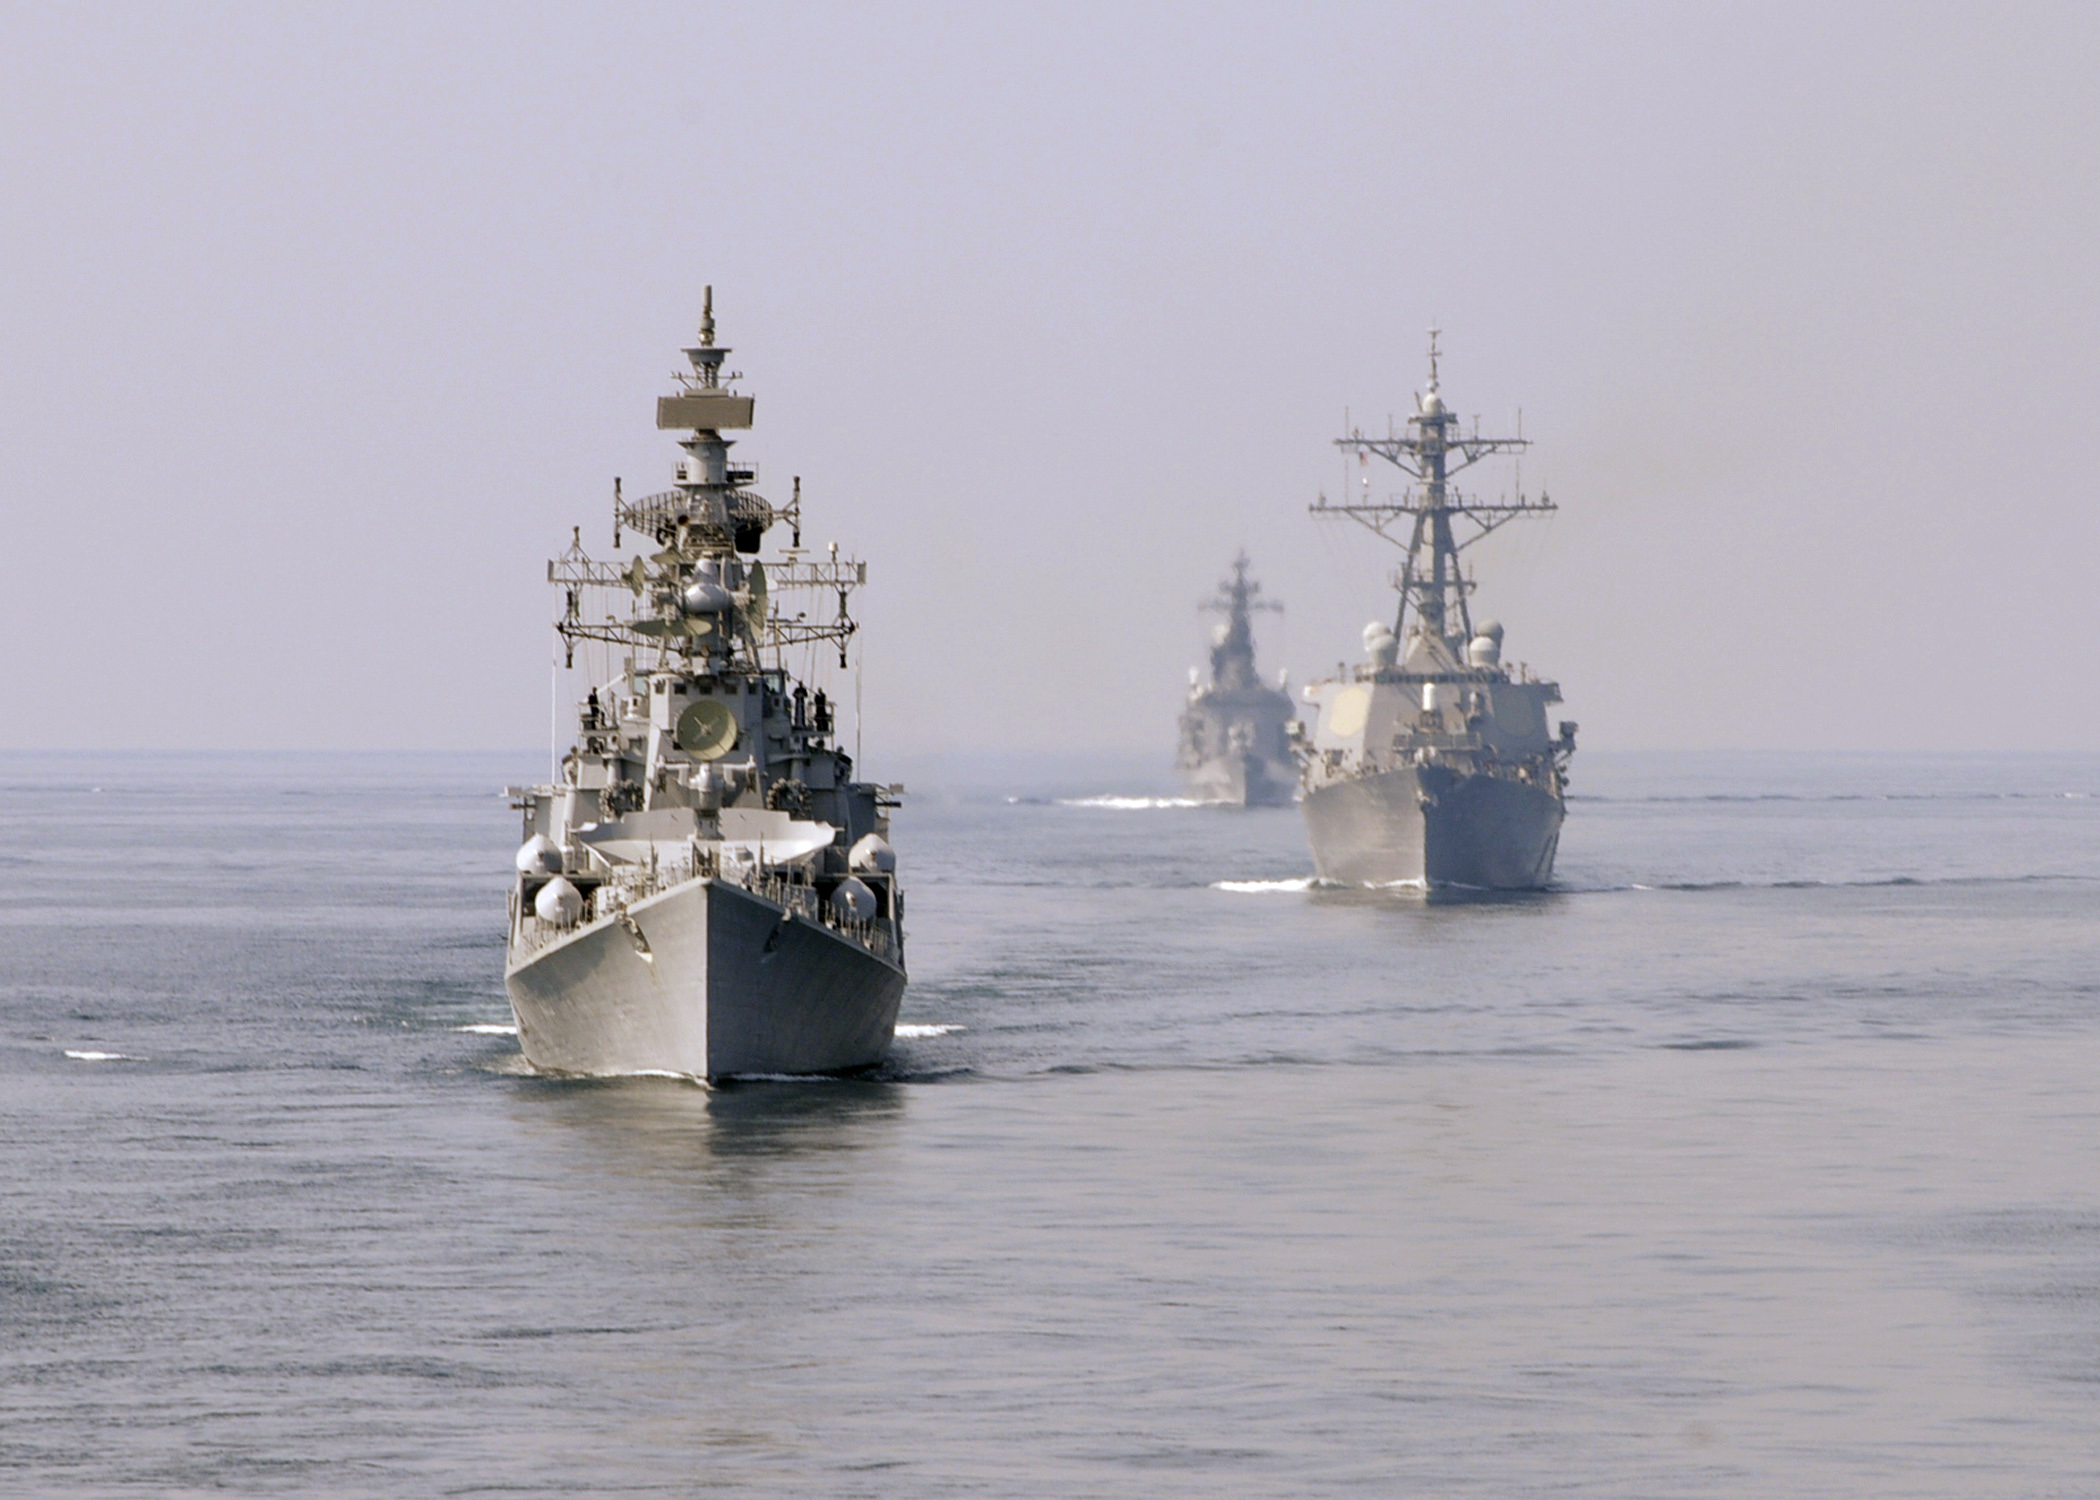 The Indian Navy guided-missile destroyer INS Ranvir (DDG-54), left, the Arleigh-Burke class guided-missile destroyer USS Fitzgerald (DDG-62), and the Japan Maritime Self-Defense Force destroyer JDS Kurama (DDH-144) are underway during Exercise Malabar 2009, an annual exercise led by the Indian Navy. US Navy photo.